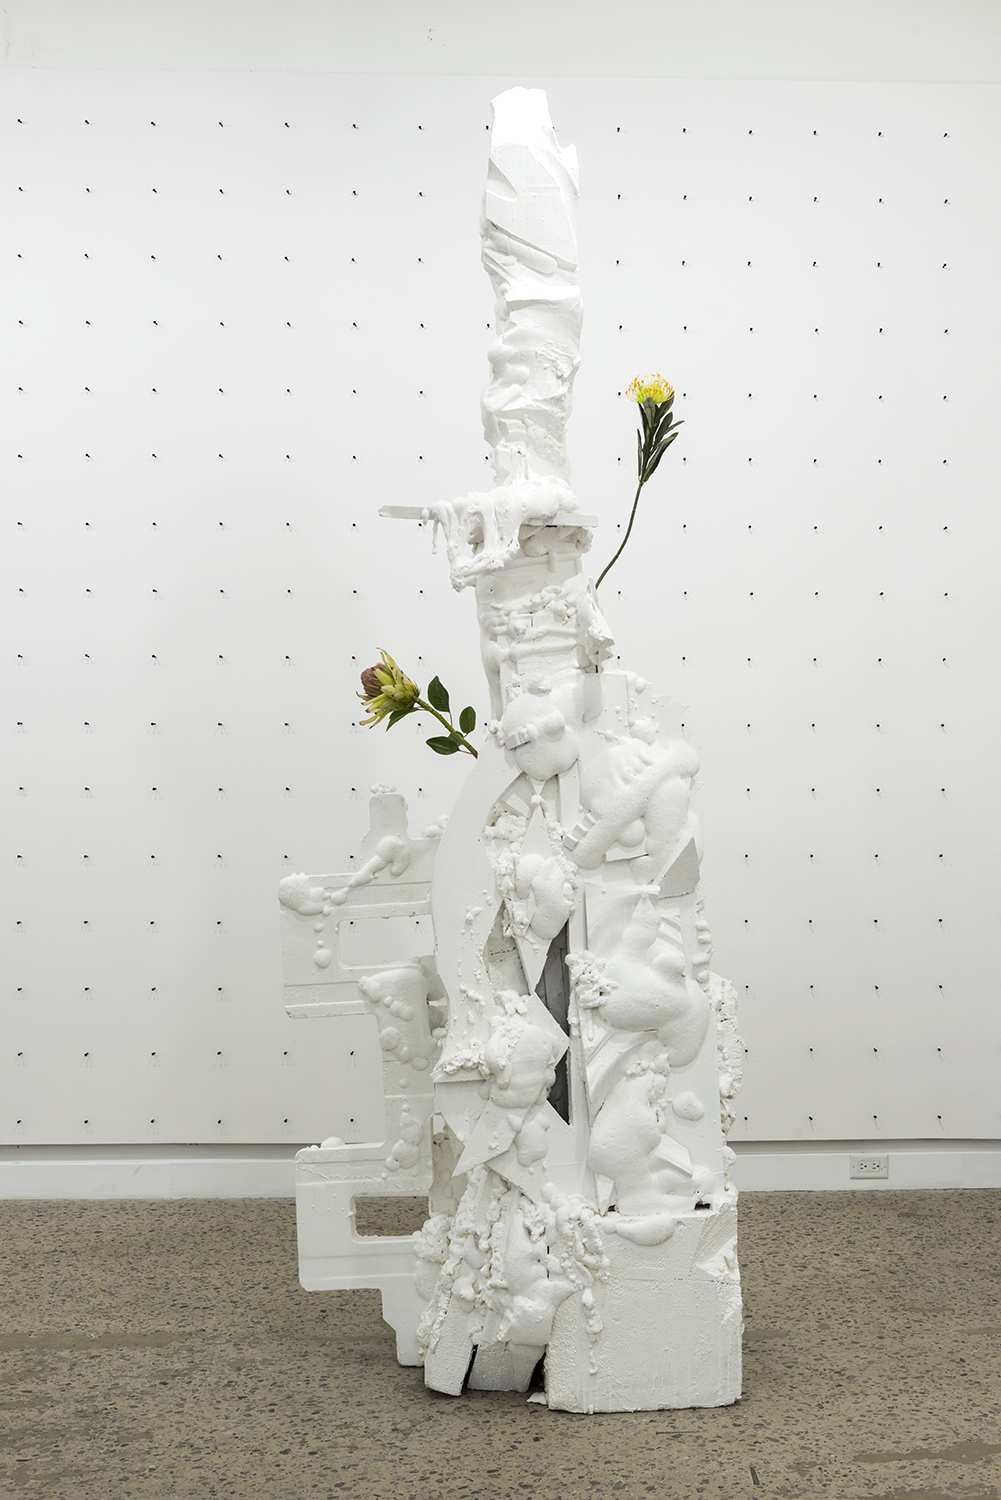 Philippe Caron Lefebvre,  Flèche,  2016, Polyurethane foam, polystyrene, paint and artificial flowers , variable dimensions